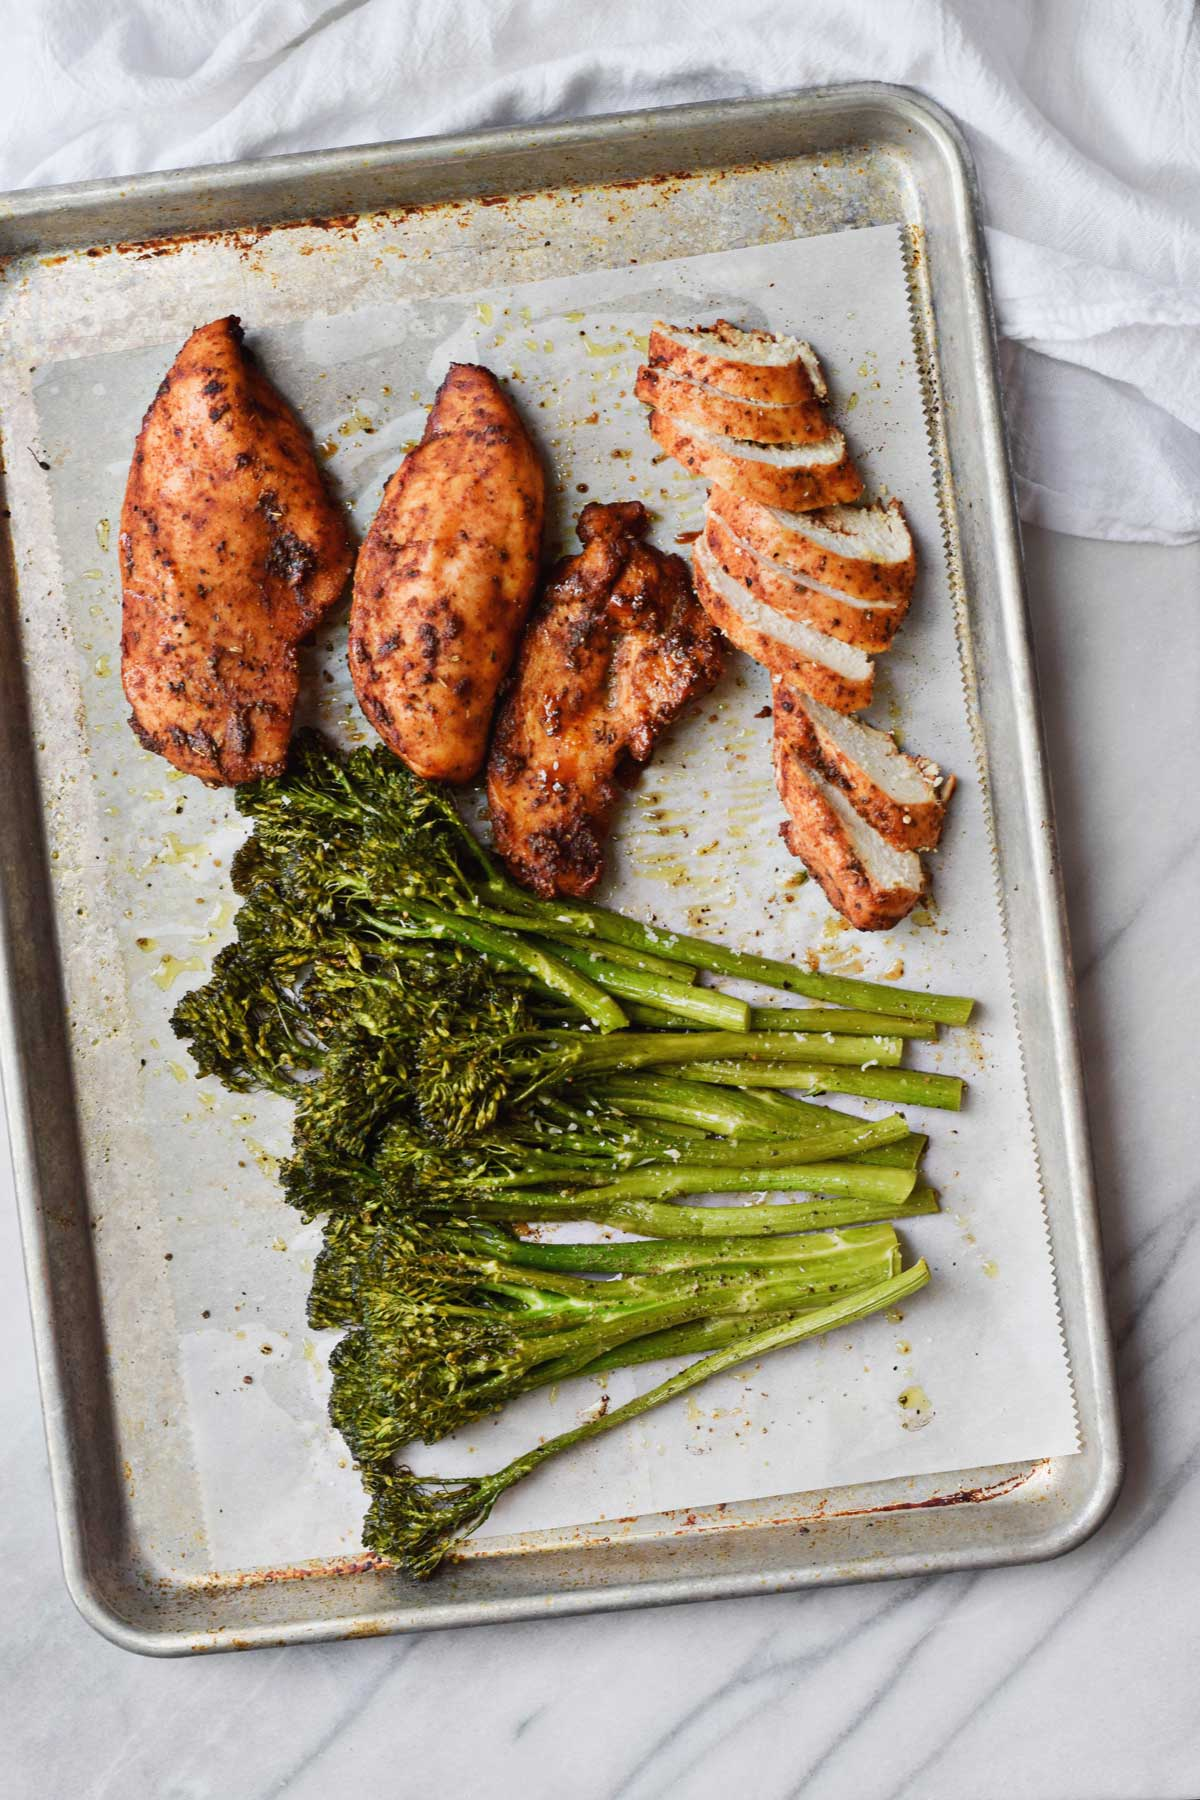 Brown Sugar Spiced Baked Chicken with Broccolini